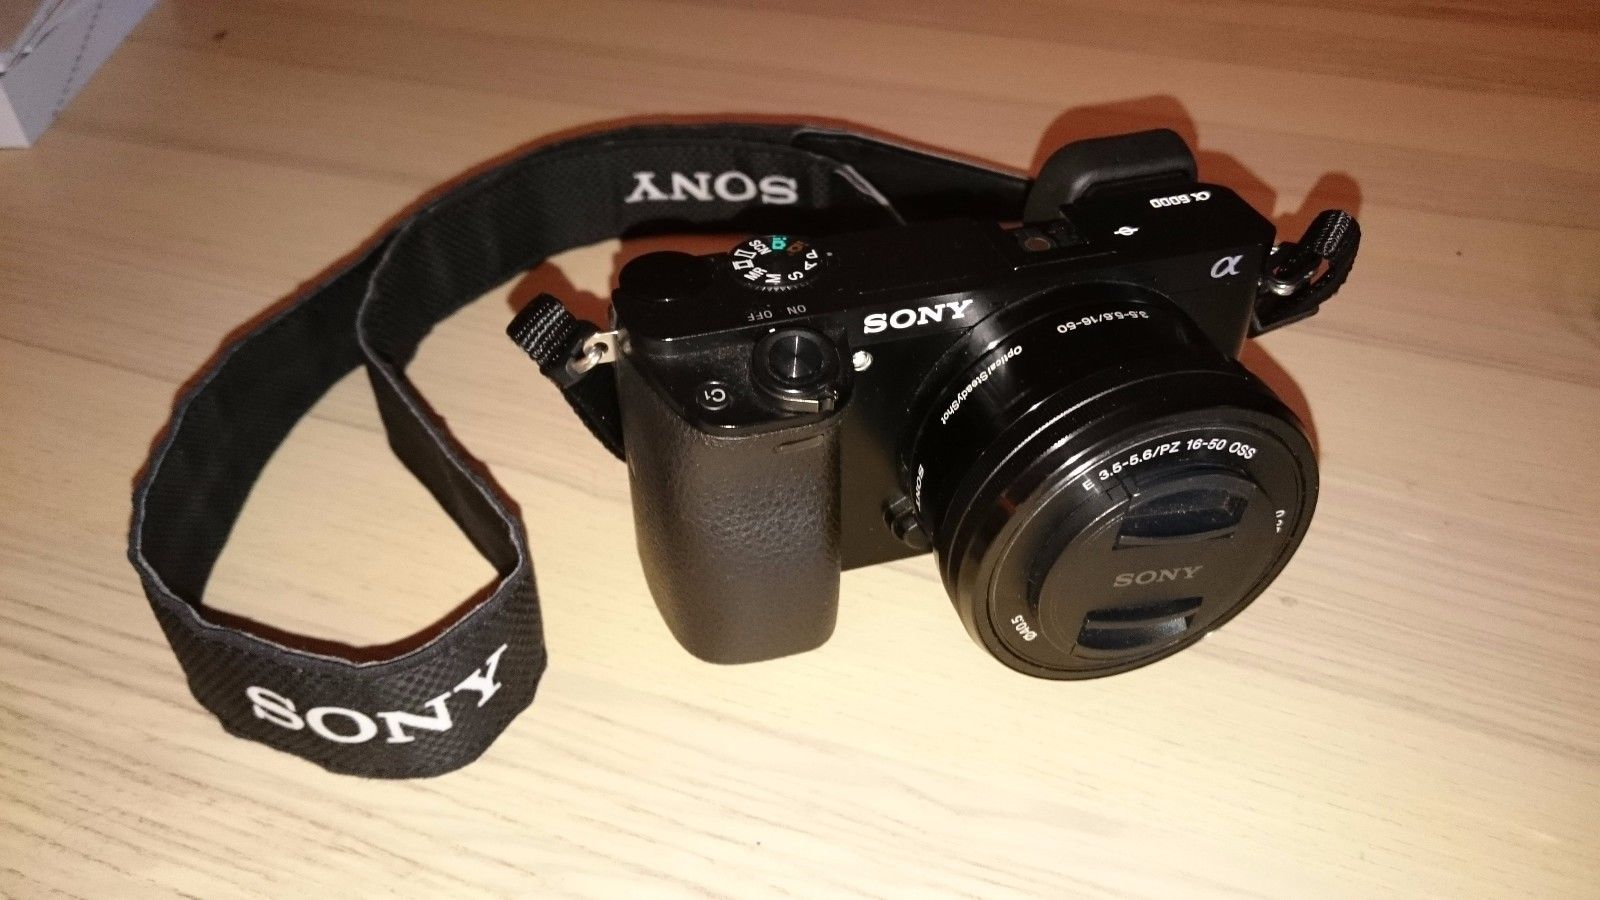 Sony Alpha ILCE-6000L 24.3 MP SLR-Digitalkamera - Schwarz (Kit m/ E PZ 16-50mm